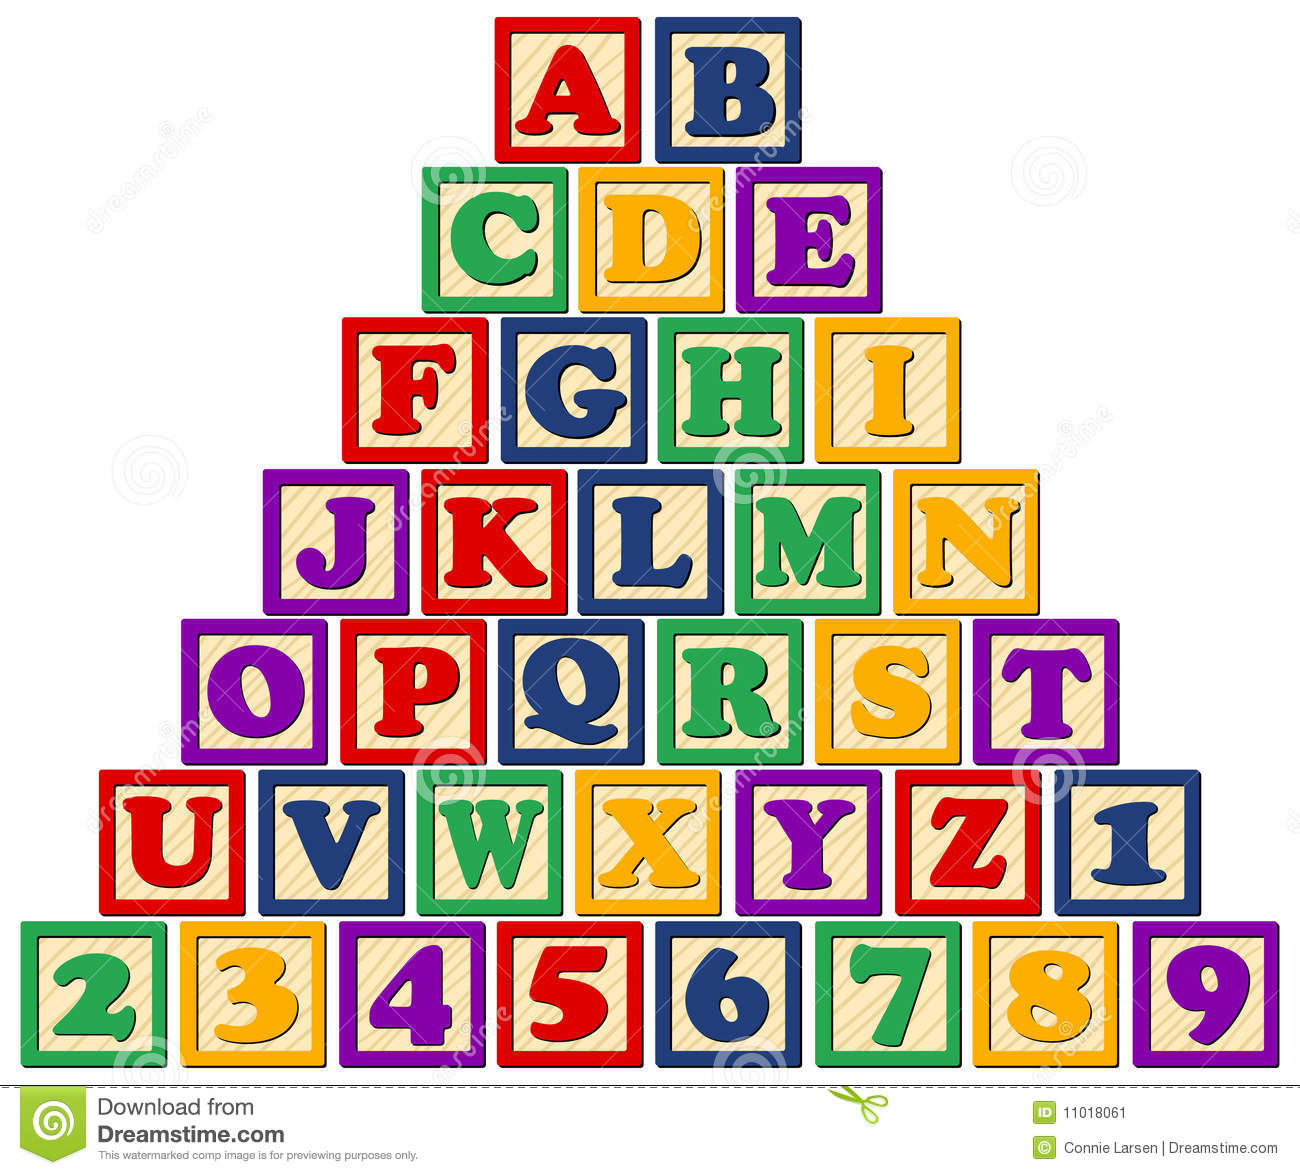 kids letter blocks mersn proforum co